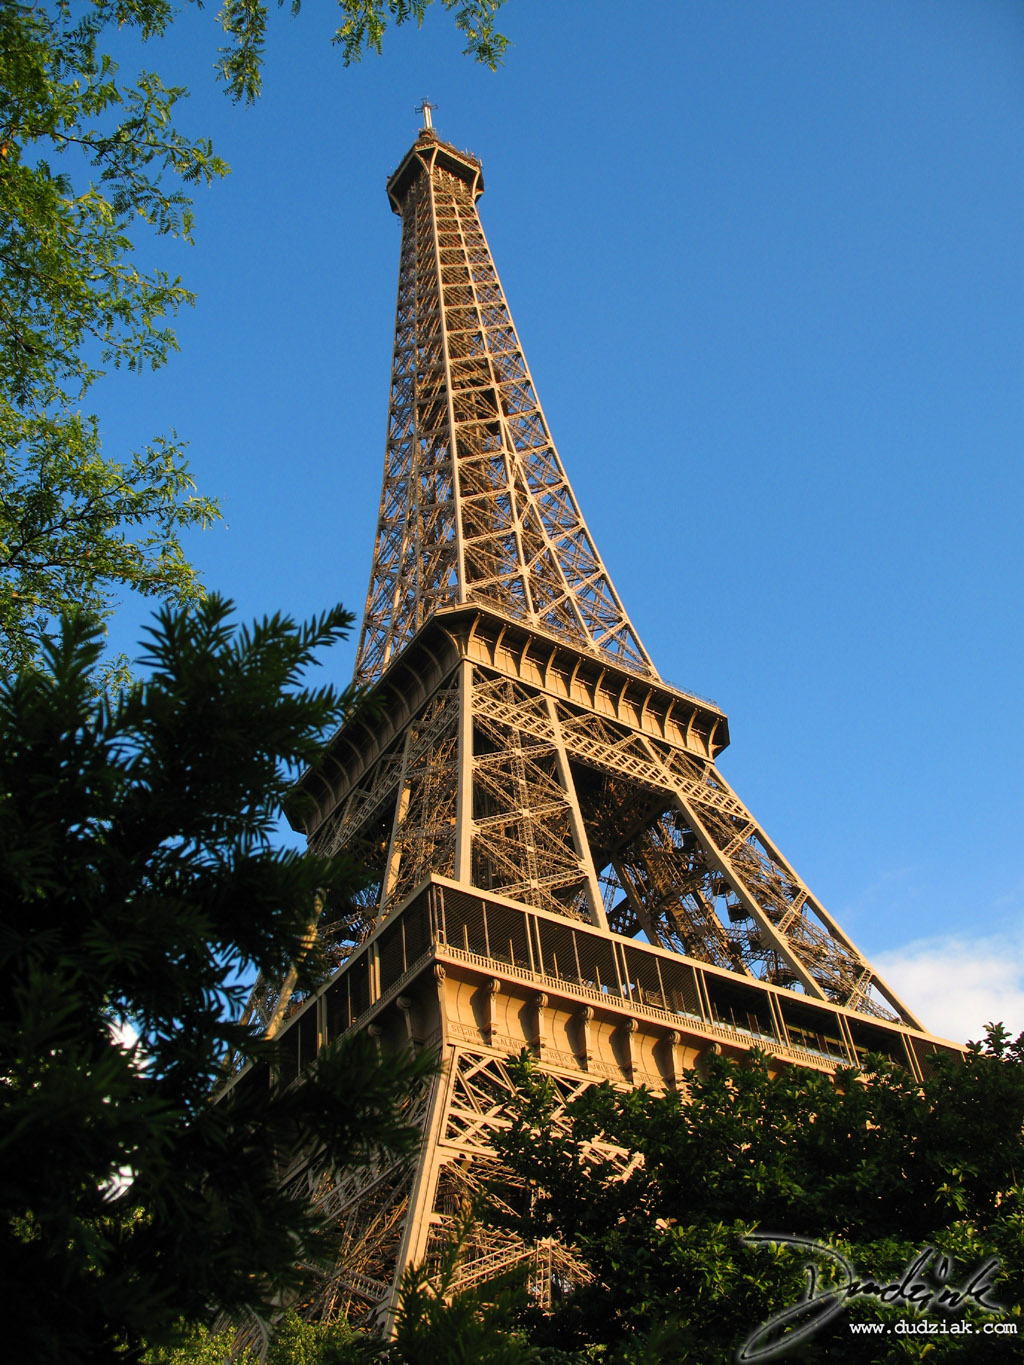 Eiffel Tower,  Trees,  Blue Sky